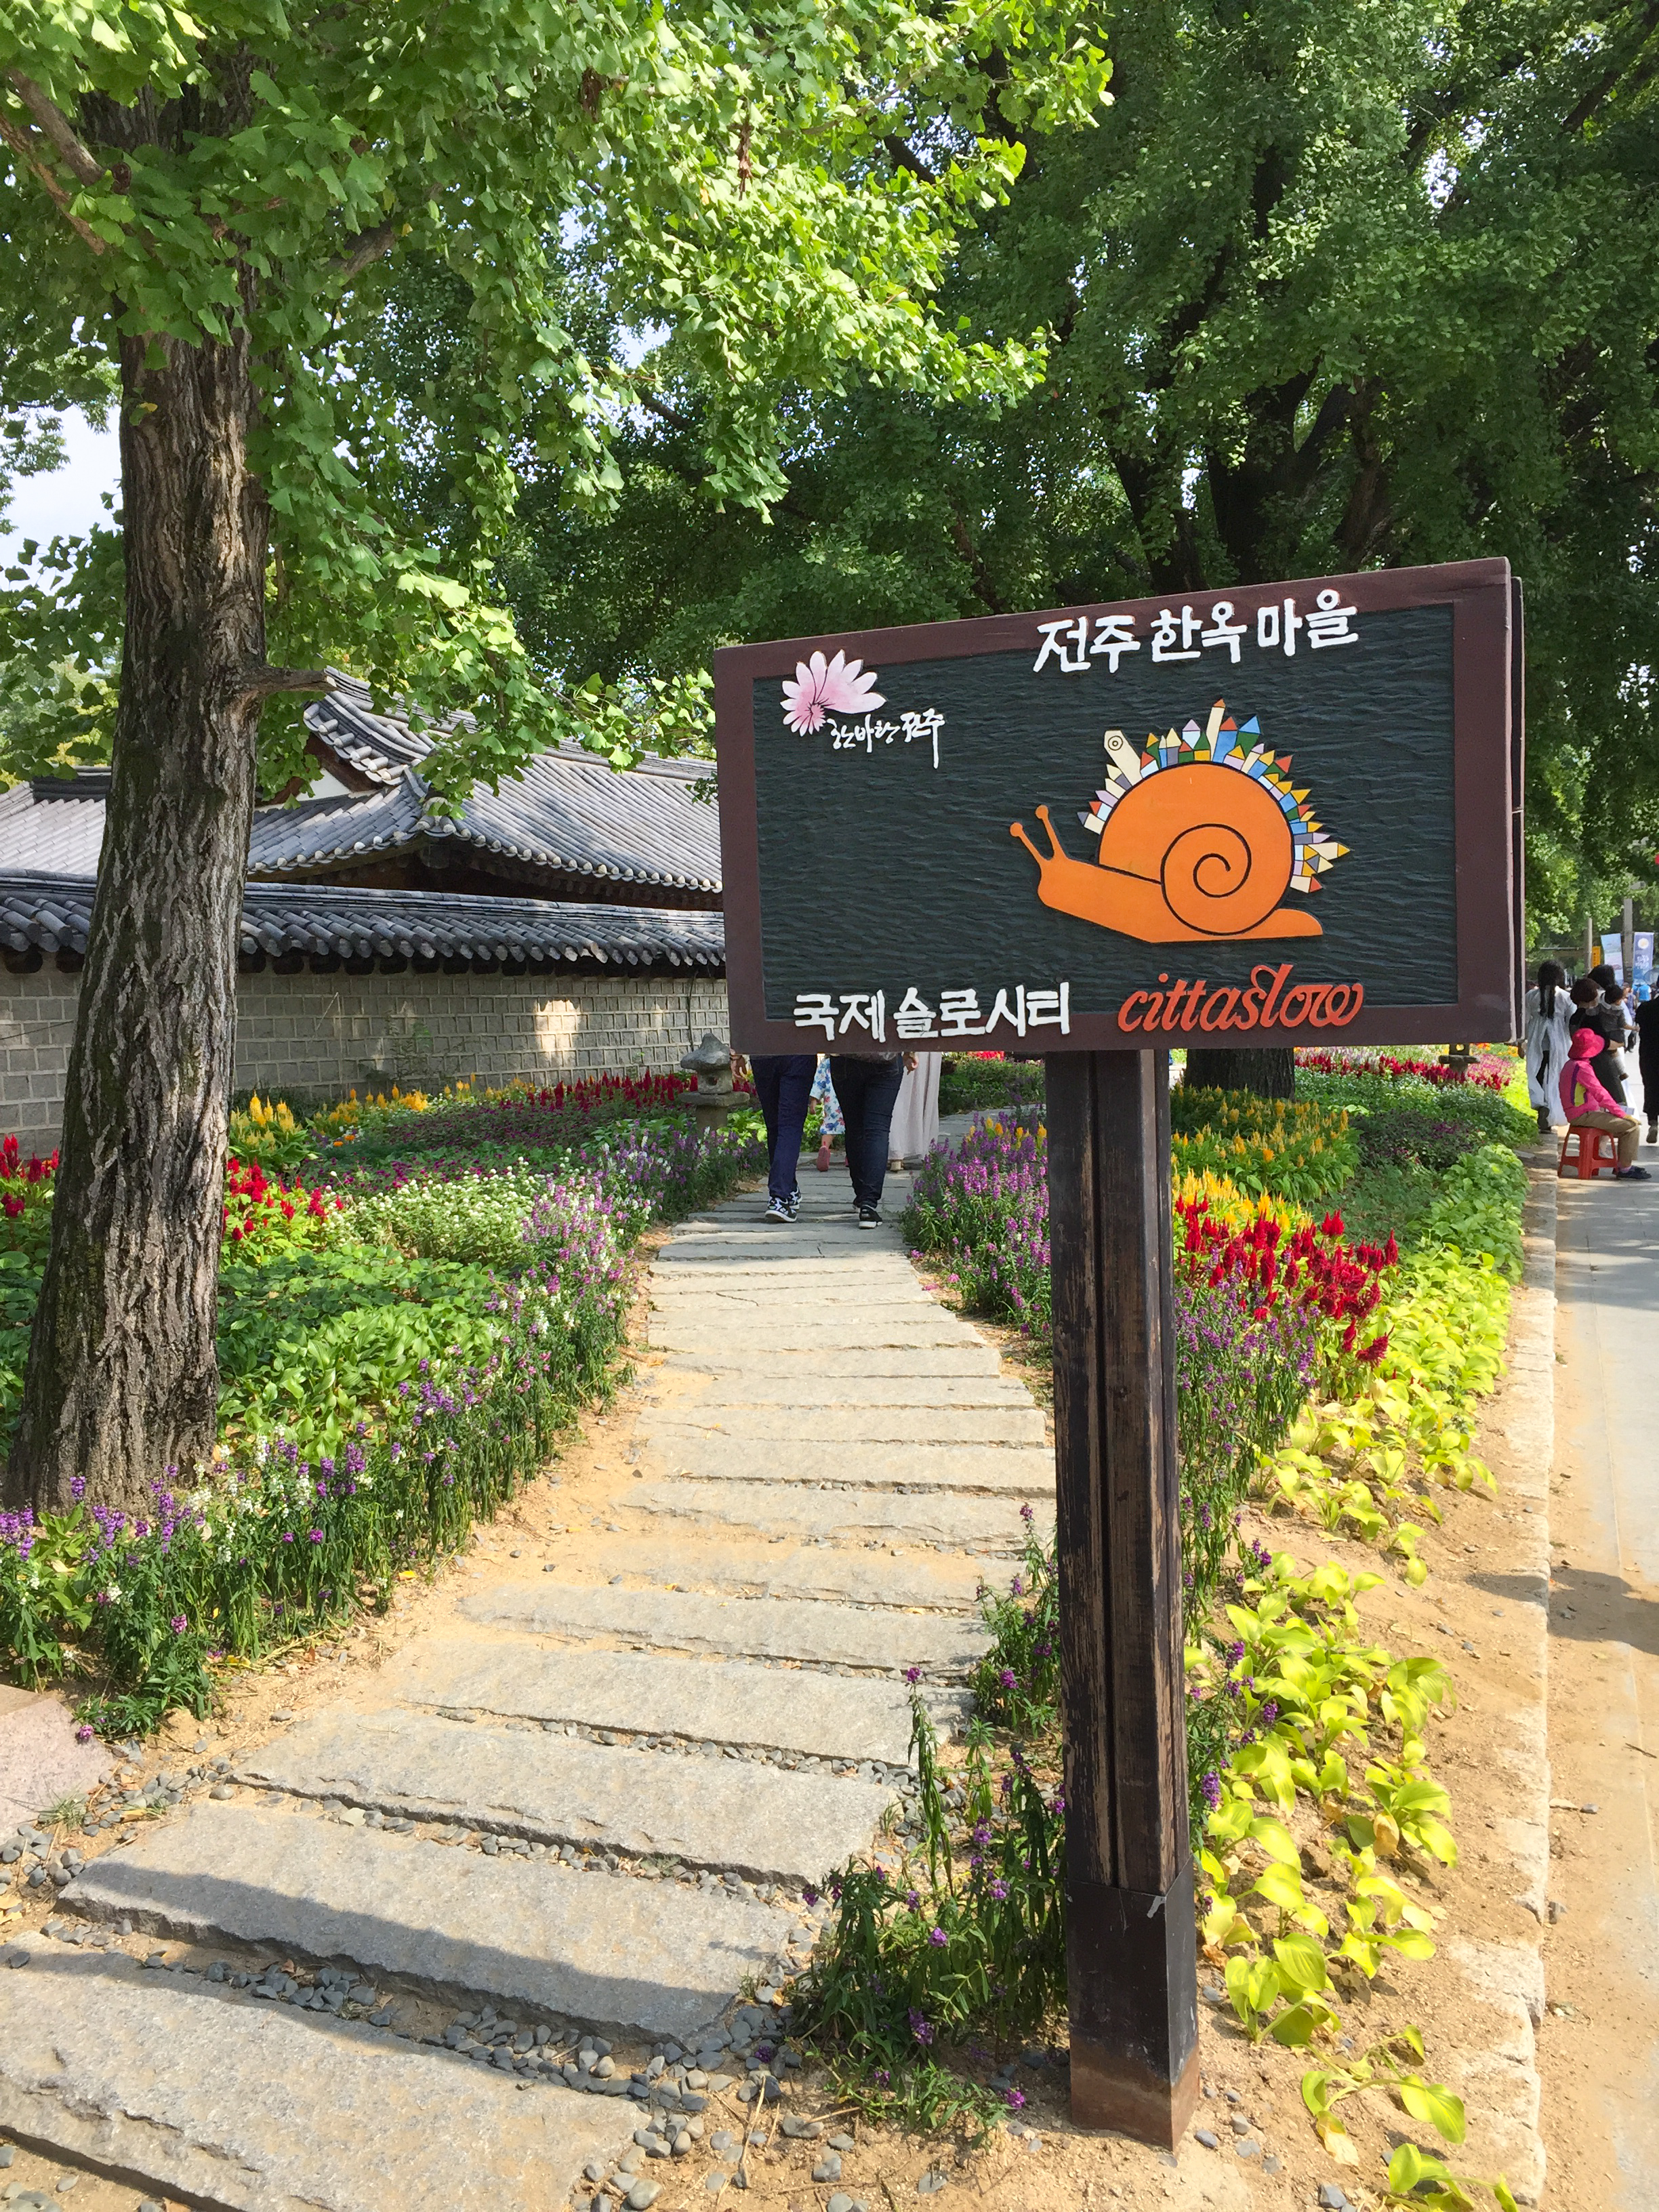 Entrance into the beautiful garden in Hanok Village